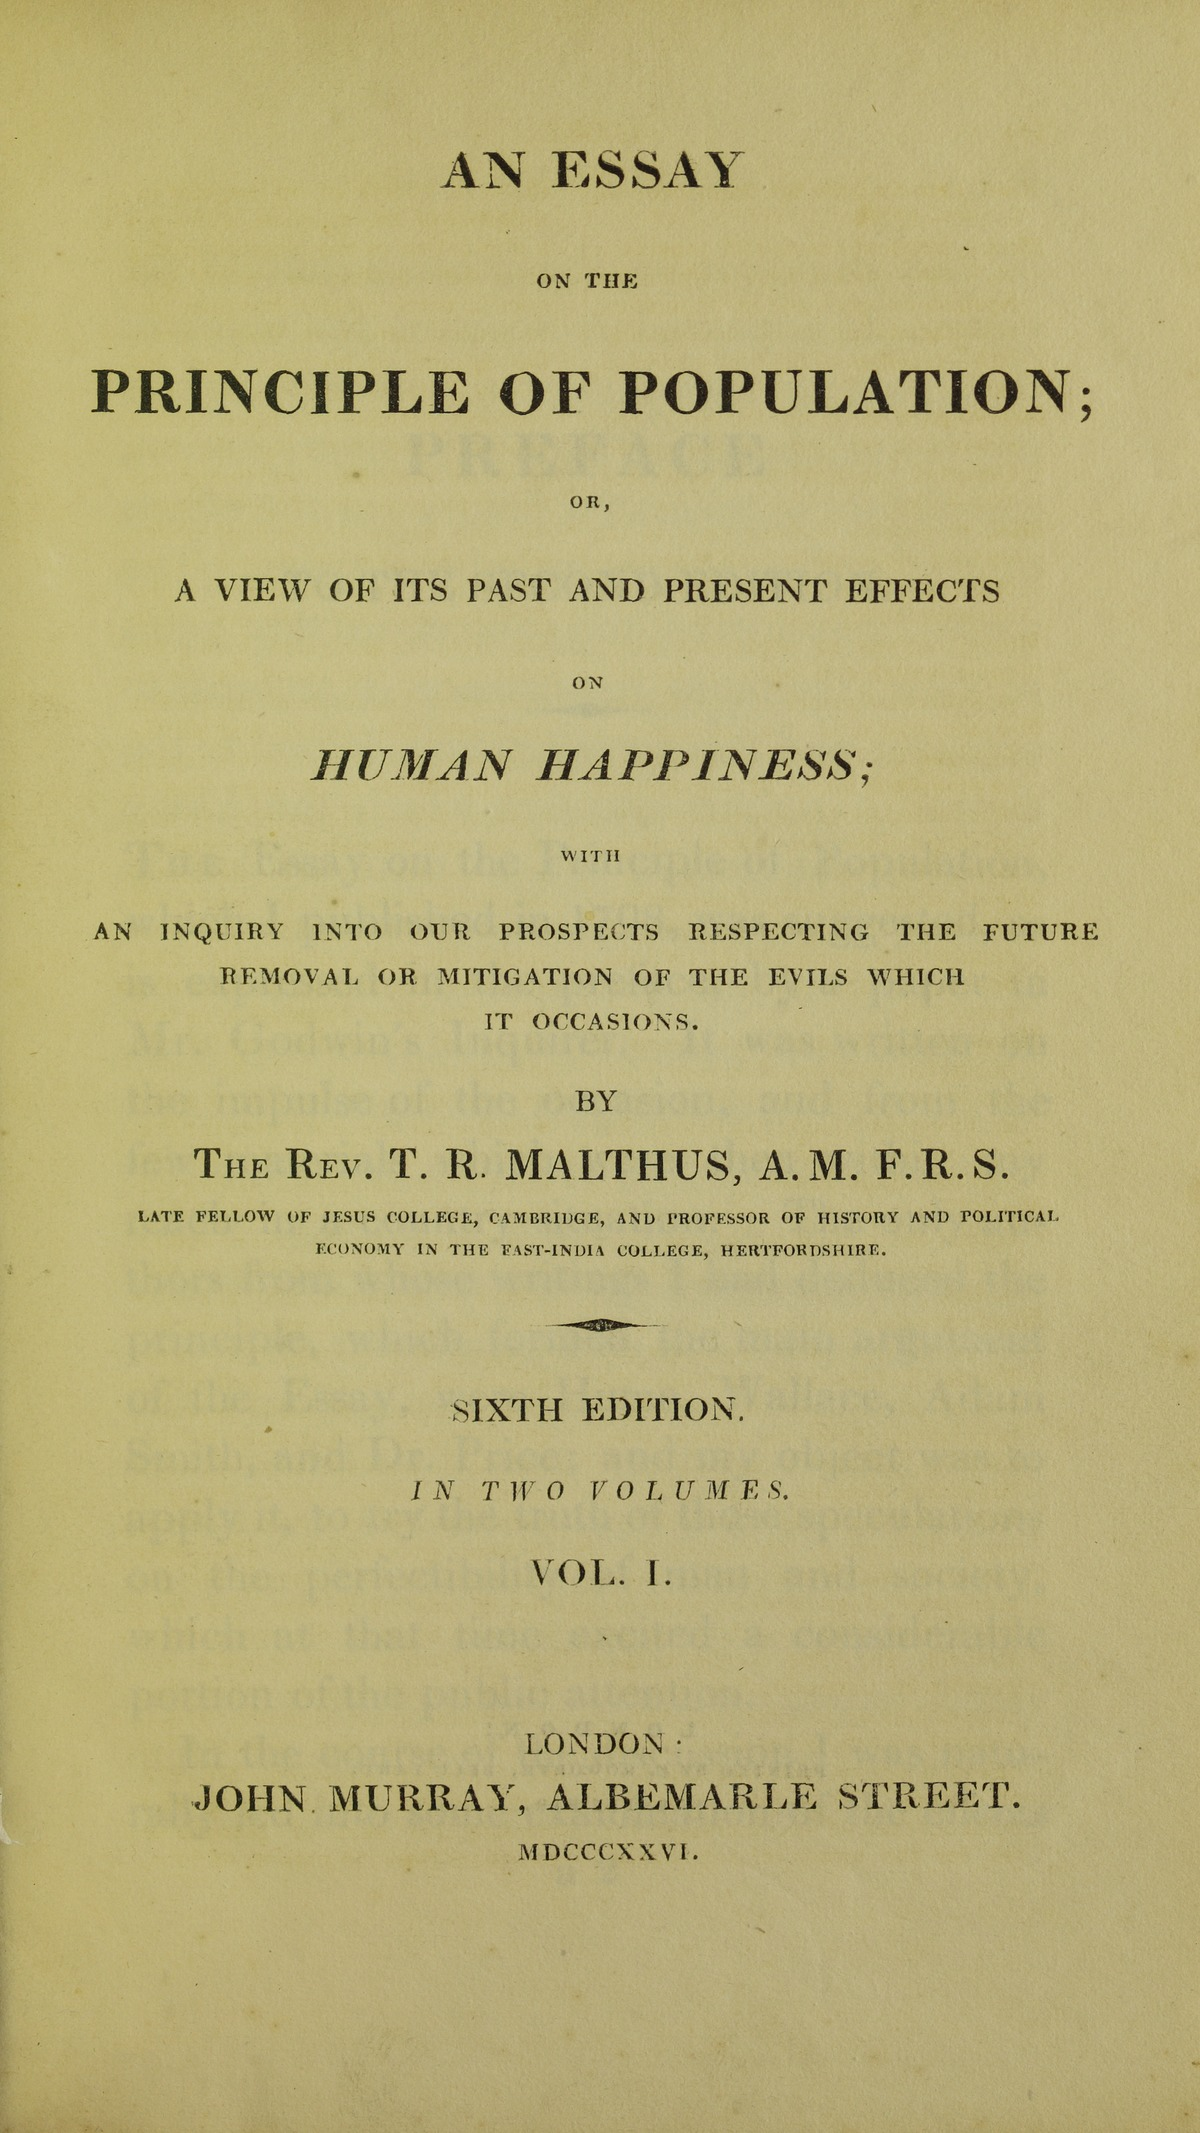 004 Thomas Malthus An Essay On The Principle Of Population Example Lossy Page1 1200px  Population2c 1826 5884843 Marvelous Summary Analysis Argued In His (1798) ThatFull